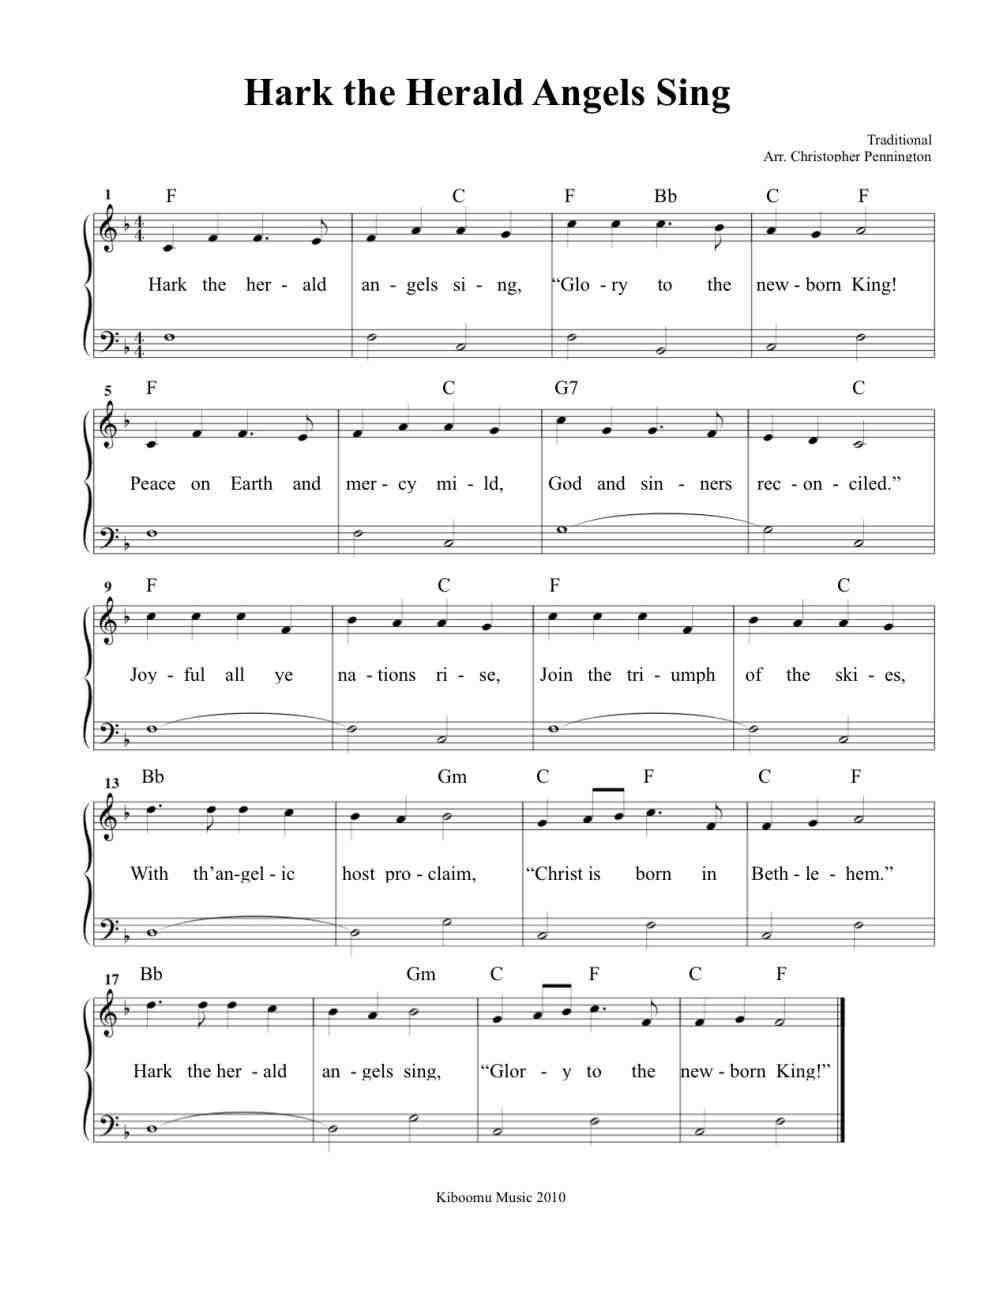 piano letter notes whistle online tune silent night jingle bells